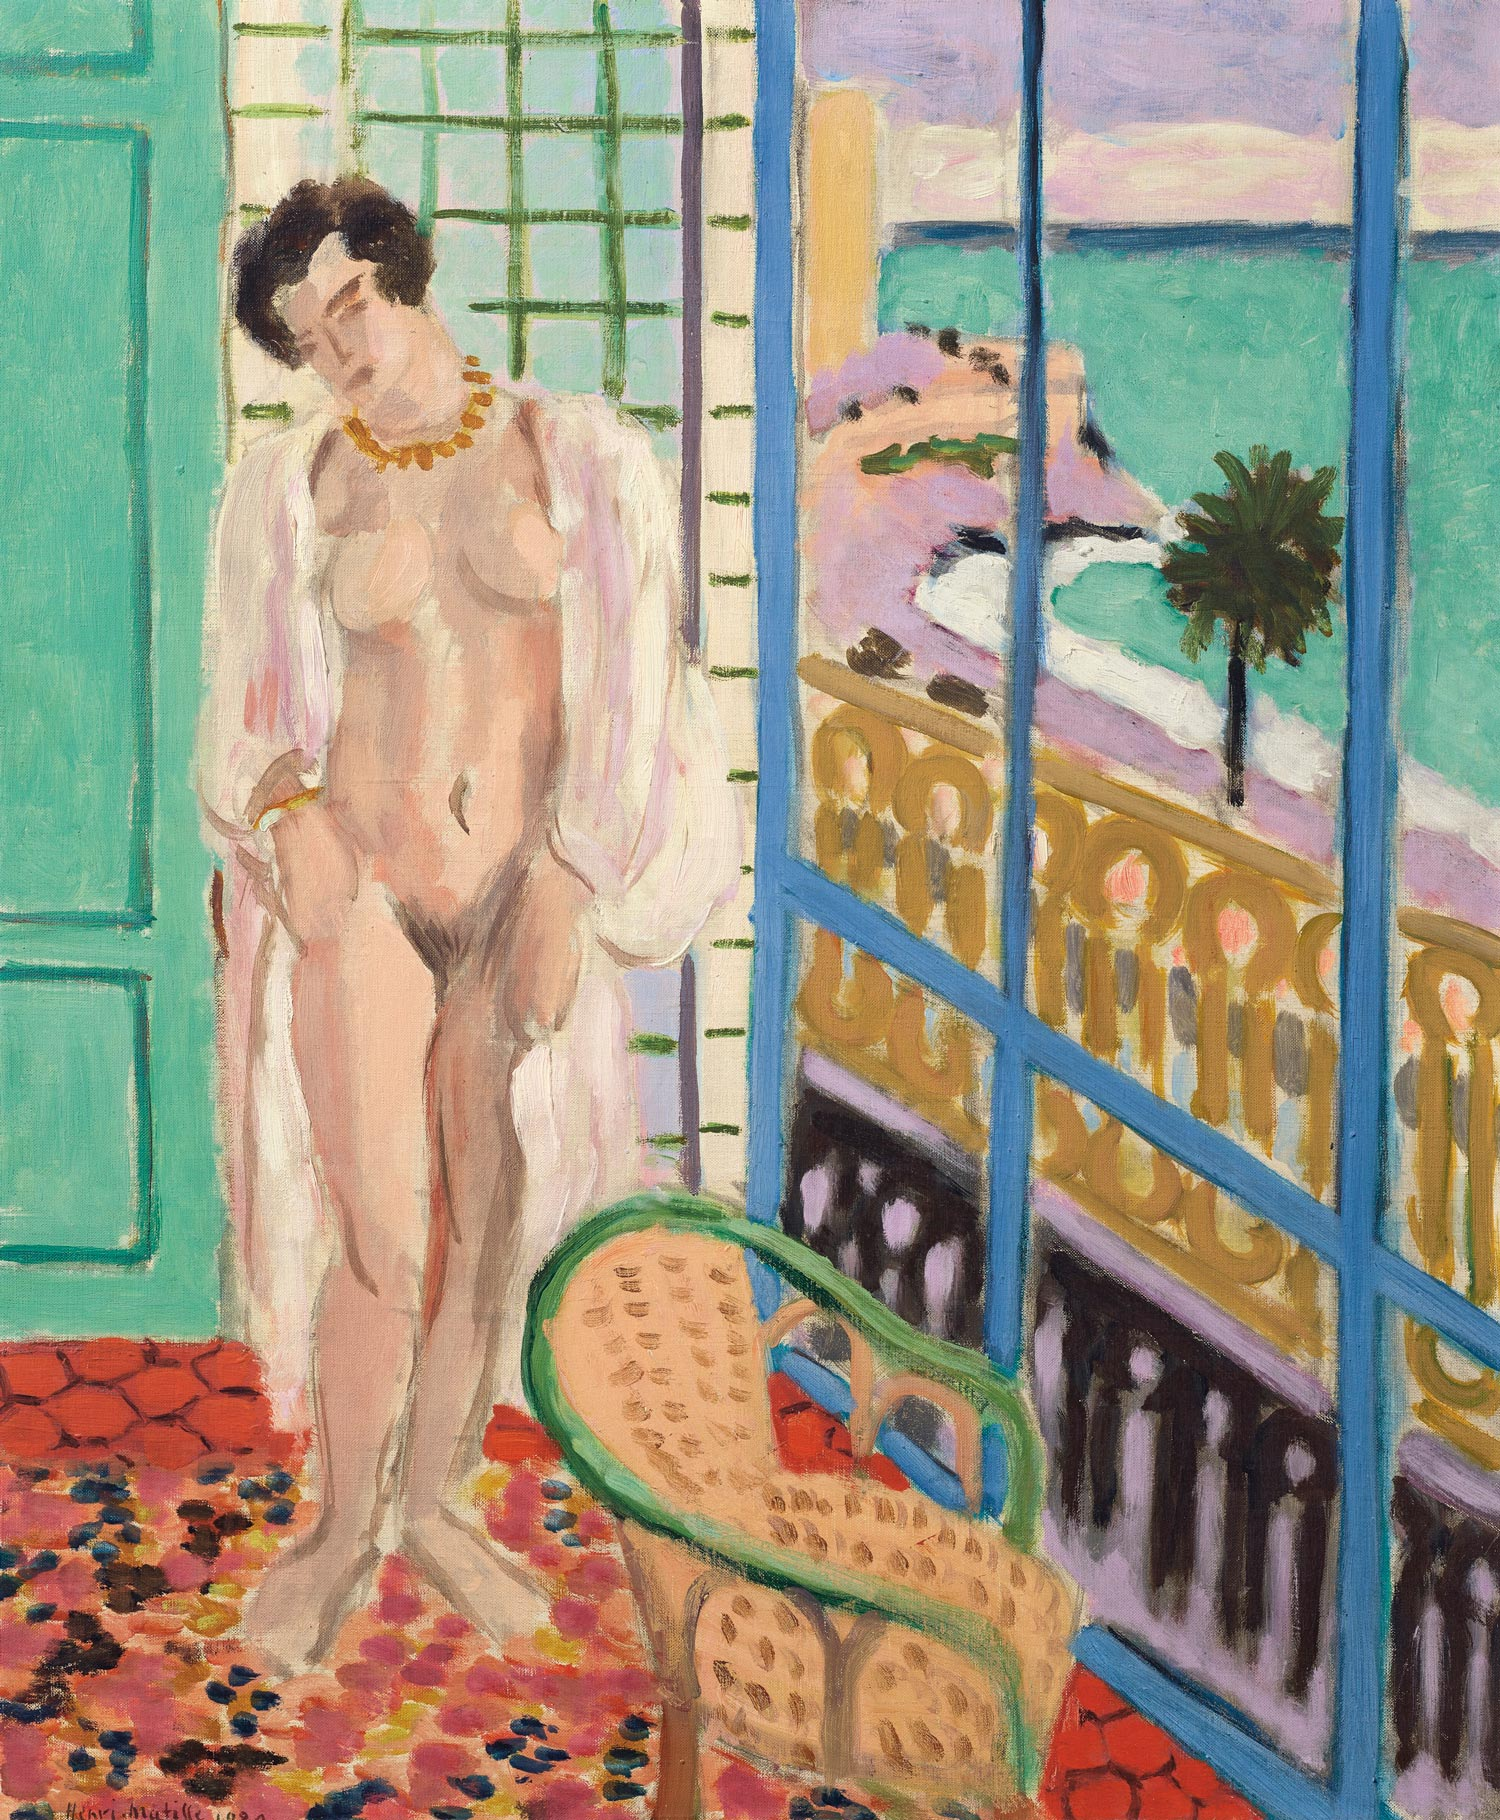 Henri Matisse (1869-1954), Nu à la fenêtre, 1929. Oil on canvas. 25 ¾ x 21 ½ in. Estimate $7,000,000-10,000,000. Offered in the Impressionist and Modern Art Evening Sale on 13 May at Christie's in New York. The Collection of Drue Heinz